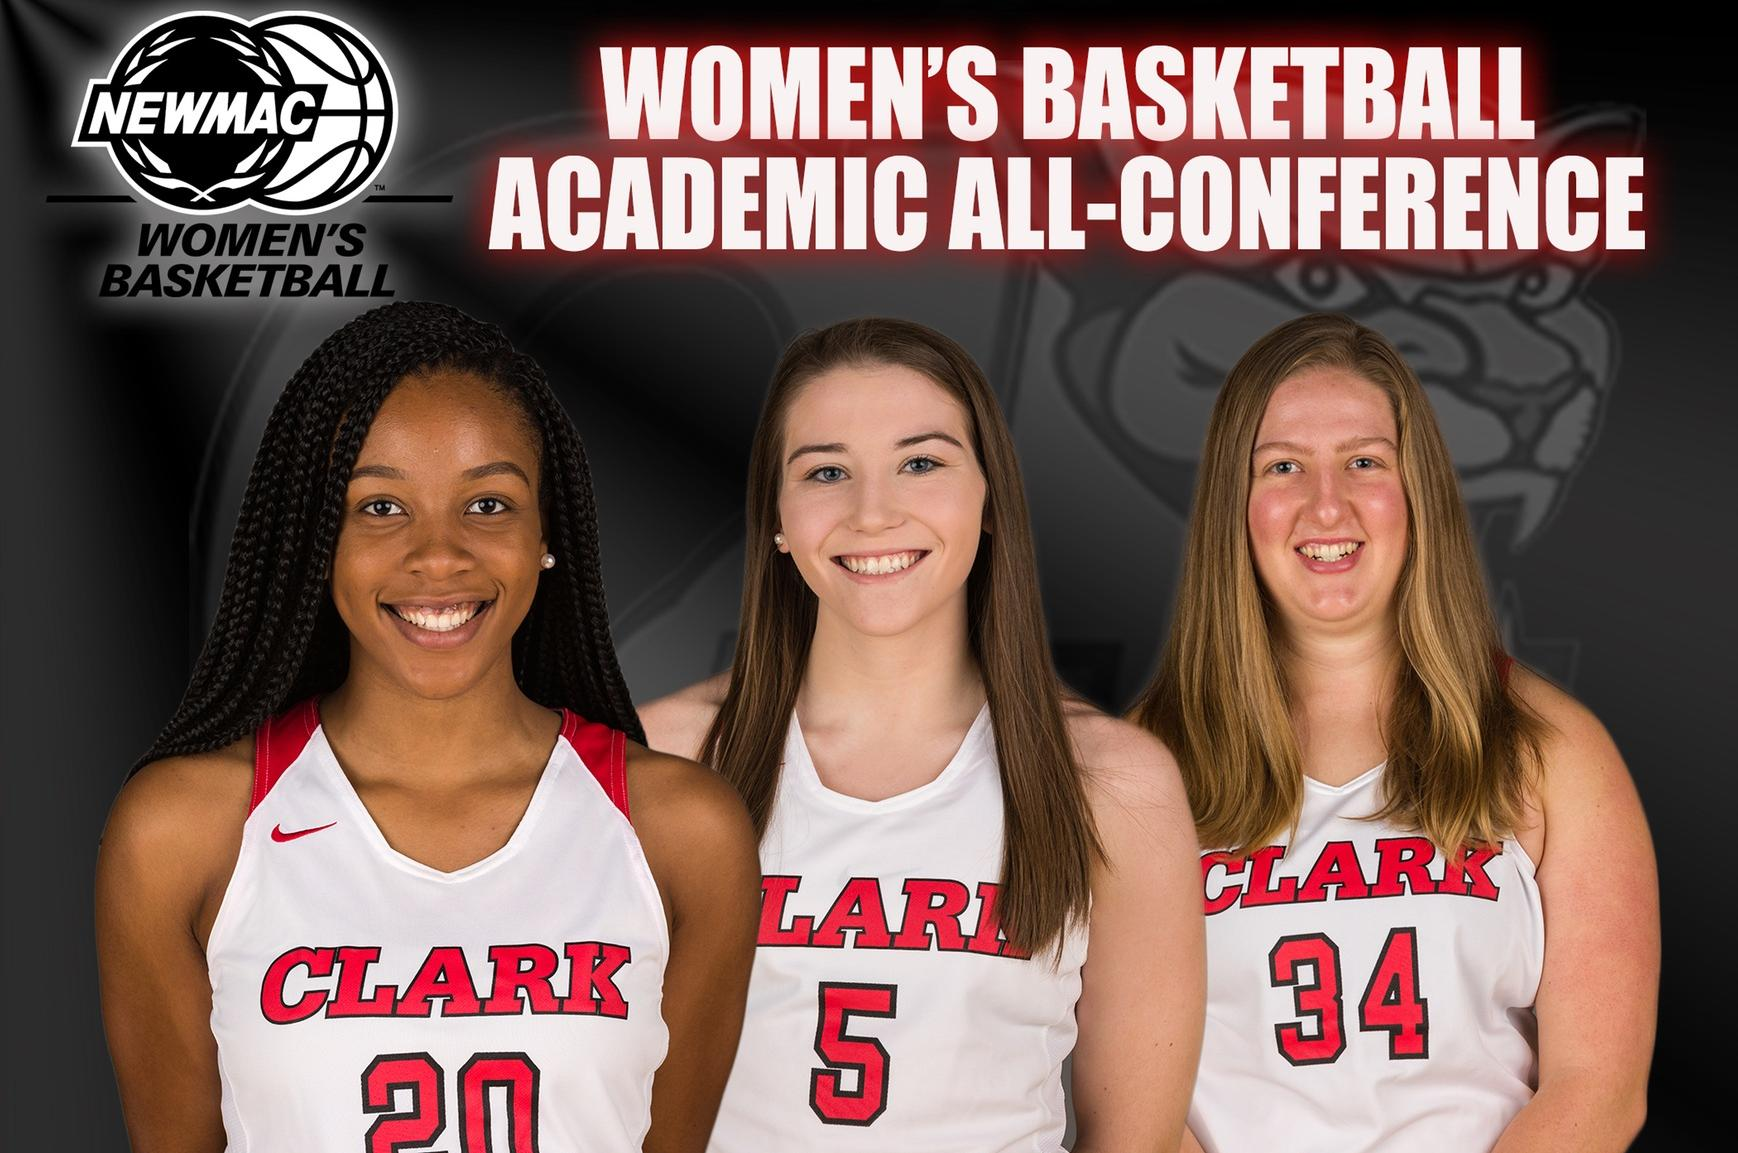 Ezemma, Legare, and Kerstetter Named to NEWMAC Academic All-Conference Team